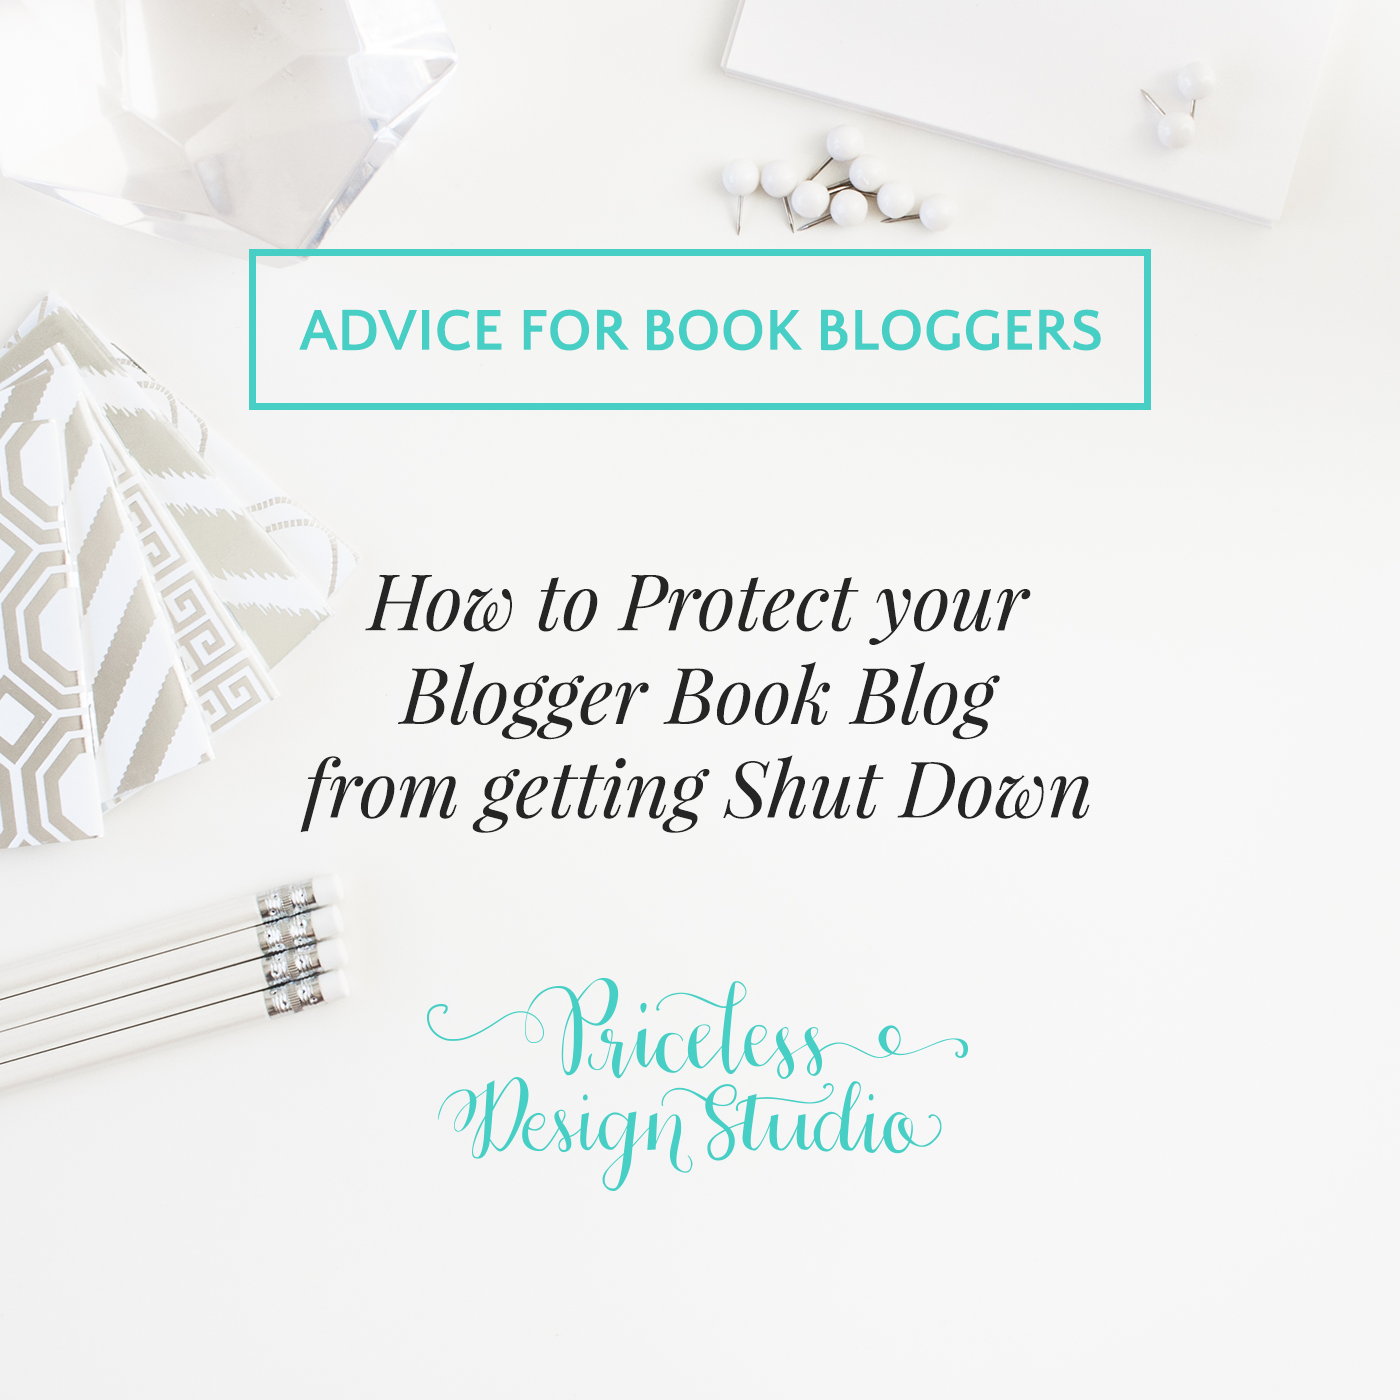 How to Protect your Blogger Book Blog from getting Shut Down